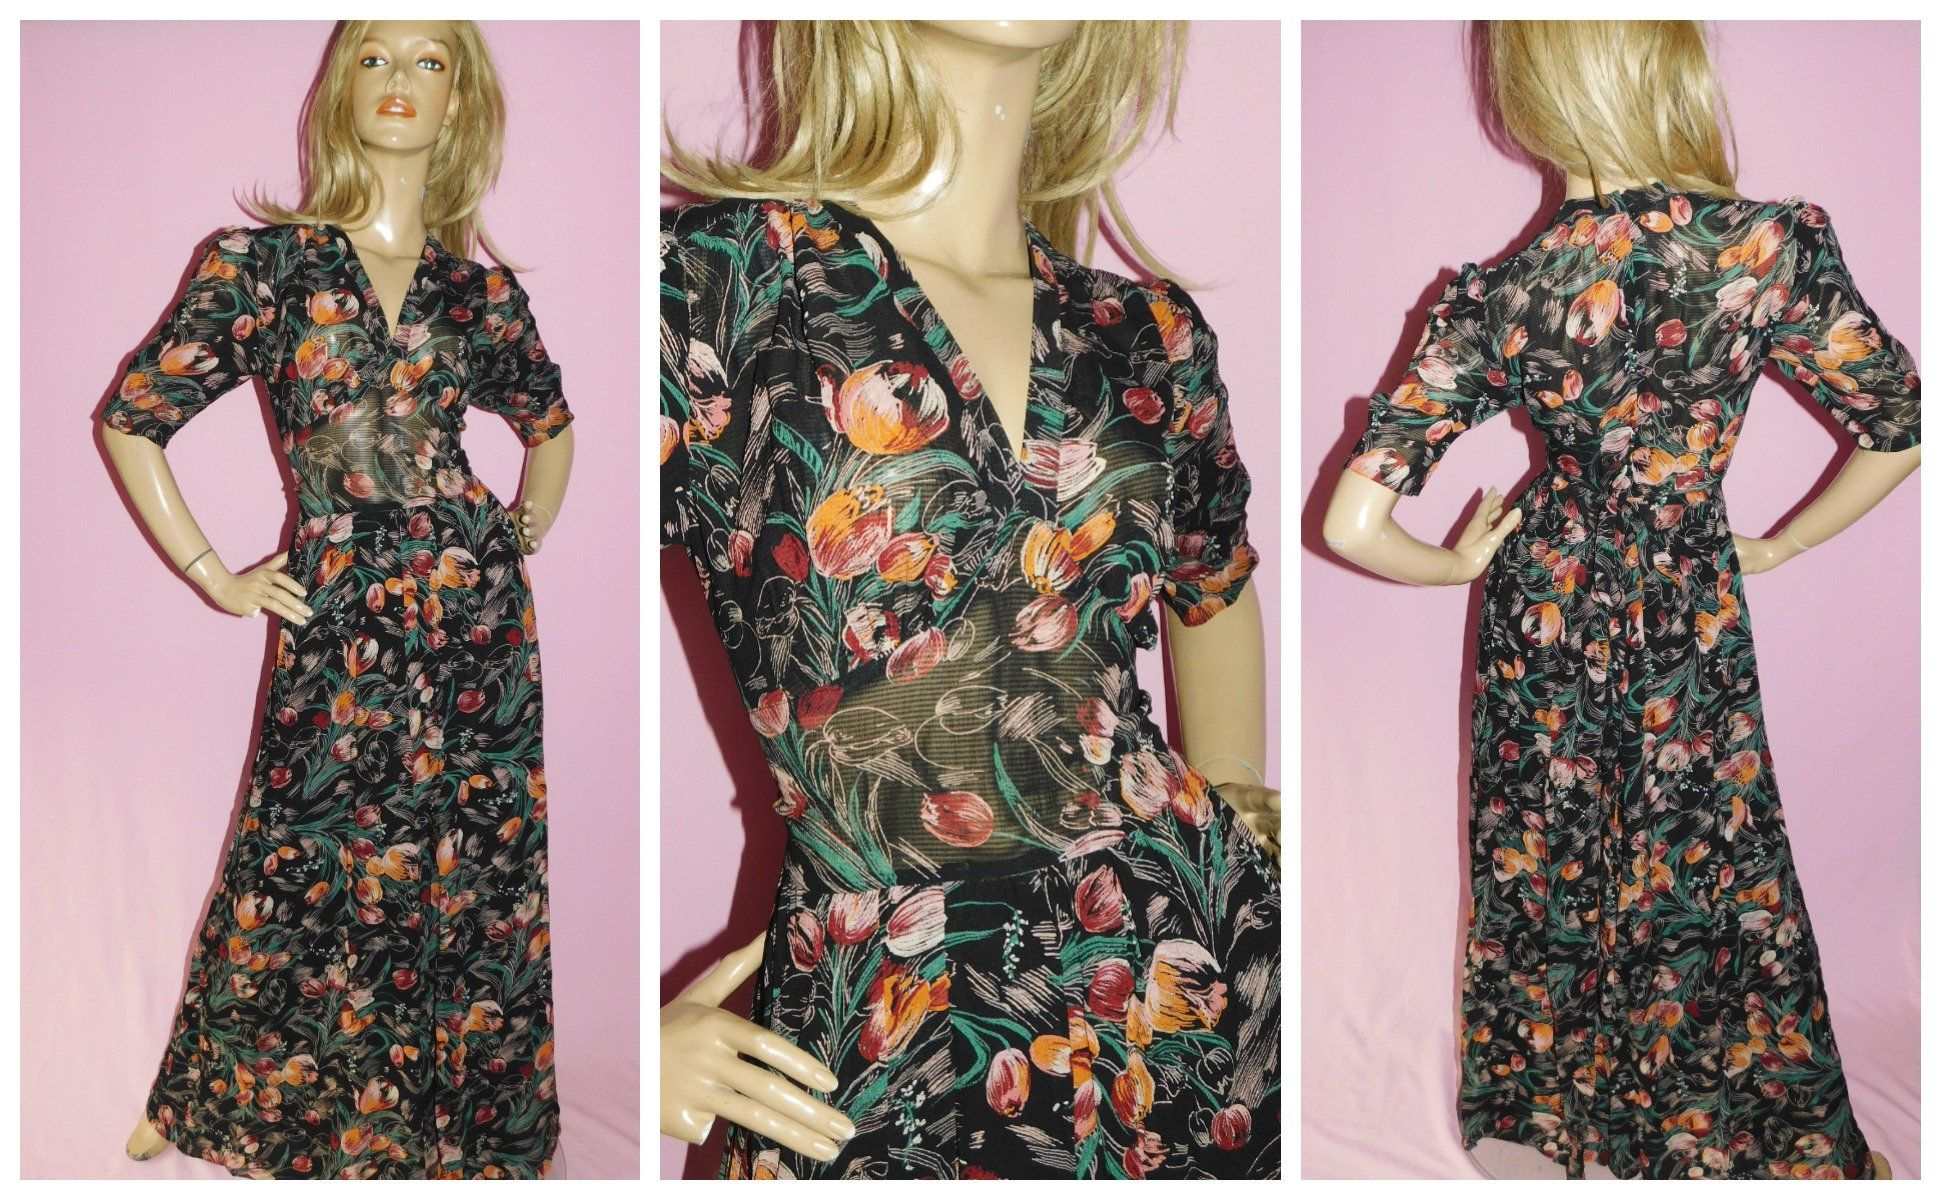 70s Party Outfit Fit and Flare Floral Dress Bohemian Clothing Vintage 1970s Sheer Floral Boho Dress Boho Chic 70s Clothing